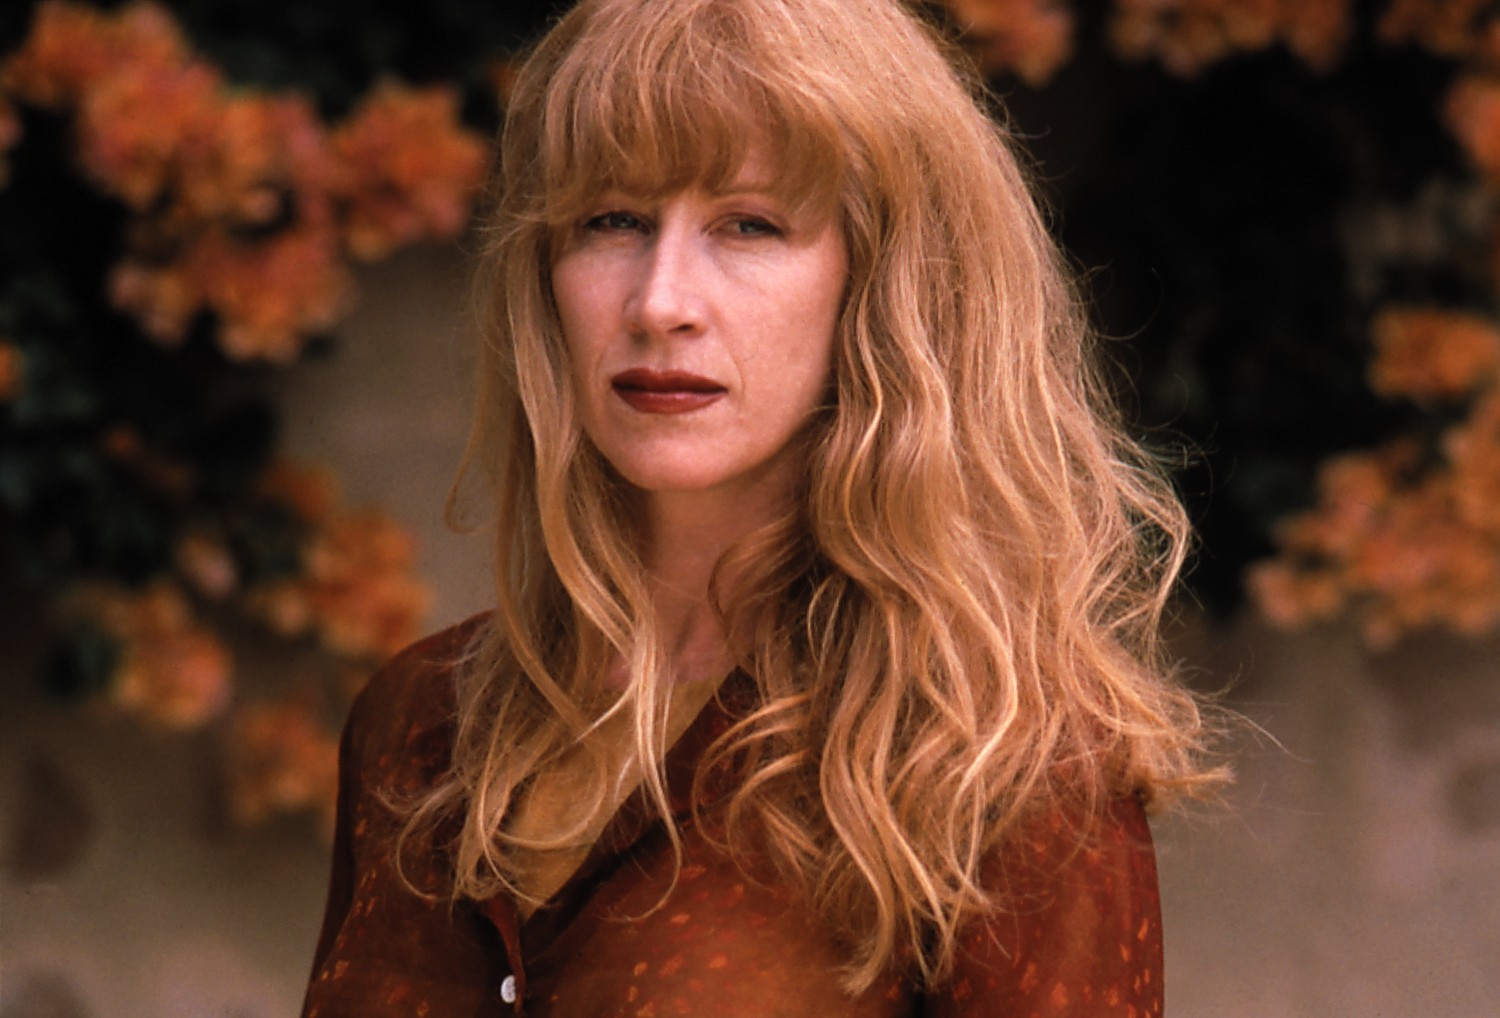 Pochette : Loreena McKennitt - Santiago (Live At The Alhambra Palace, Granada, Spain/2006)